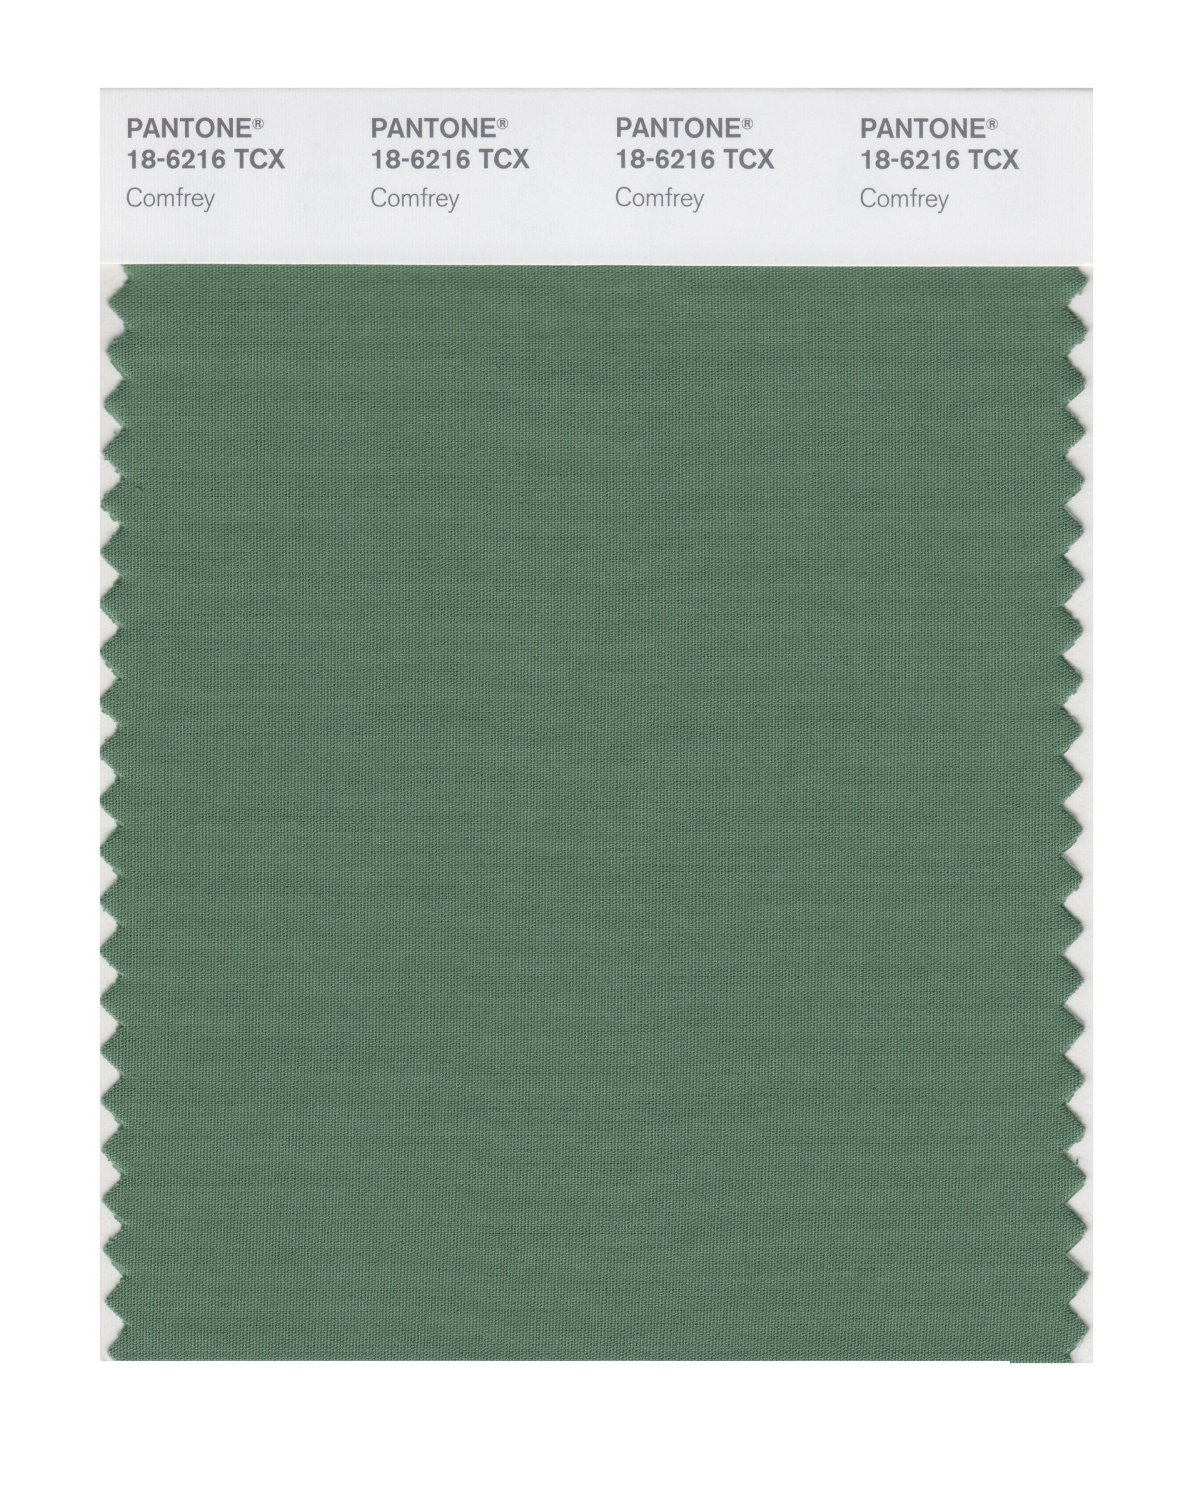 Pantone Smart Swatch 18-6216 Comfrey